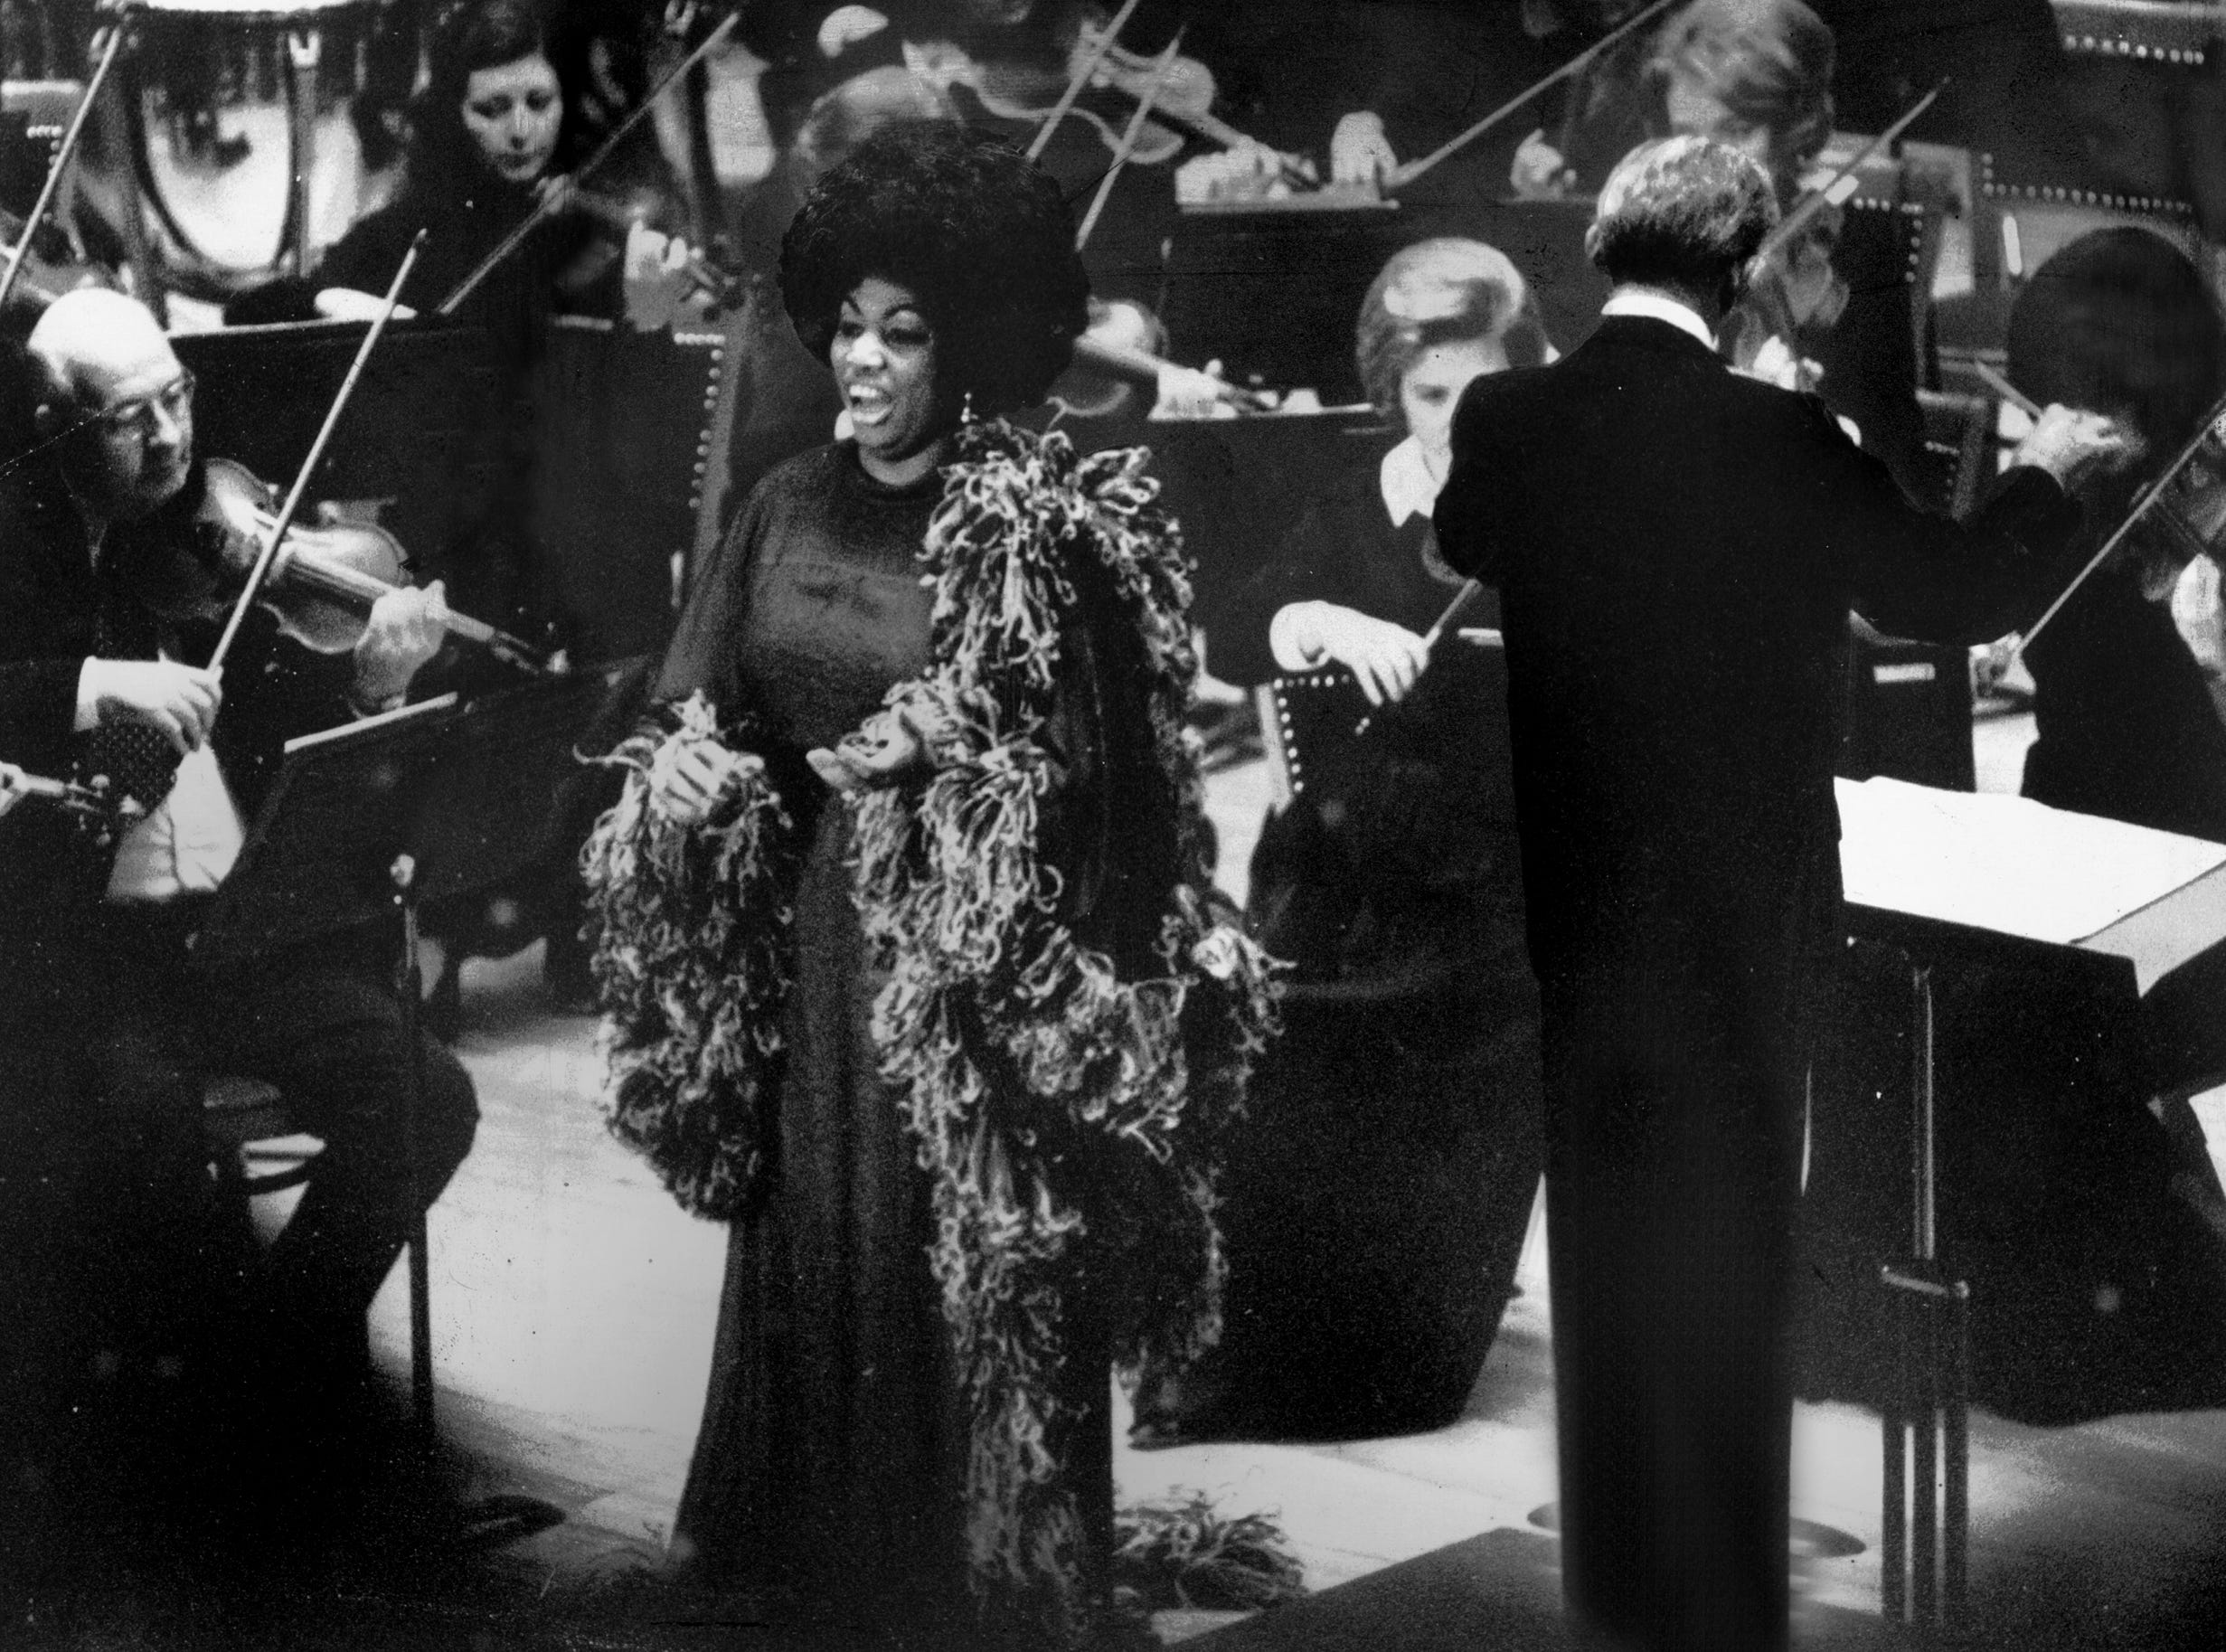 Dave Darnell/The Commercial Appeal files Soprano Leontyne Price performs with the Memphis Symphony Orchestra under the direction of Vincent de Frank (right) at the Auditorium Music Hall on Nov. 18, 1973. Arias by Verdi and Mozart and a symphonic poem by Samuel Barber were conspicuous in her program before the 2,300 in attendance. Soprano Leontyne Price performs with the Memphis Symphony Orchestra under the direction of Vincent de Frank (right) at the Auditorium Music Hall on Nov. 18, 1973. Arias by Verdi and Mozart and a symphonic poem by Samuel Barber were conspicuous in her program before the 2,300 in attendance.